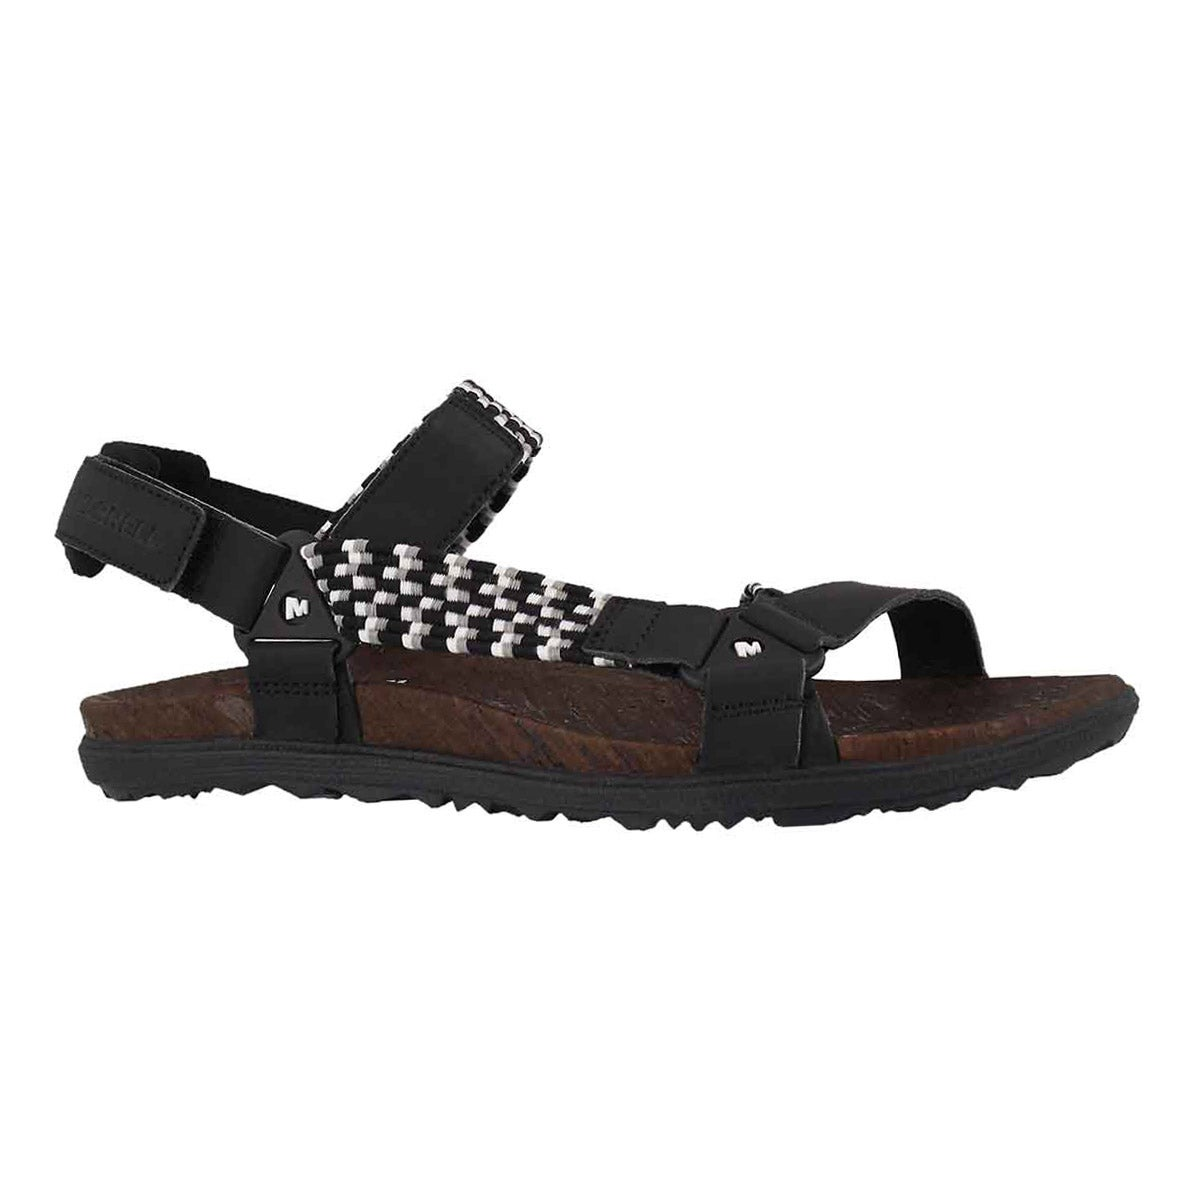 Lds Around Town Sunvue Woven blk sandal